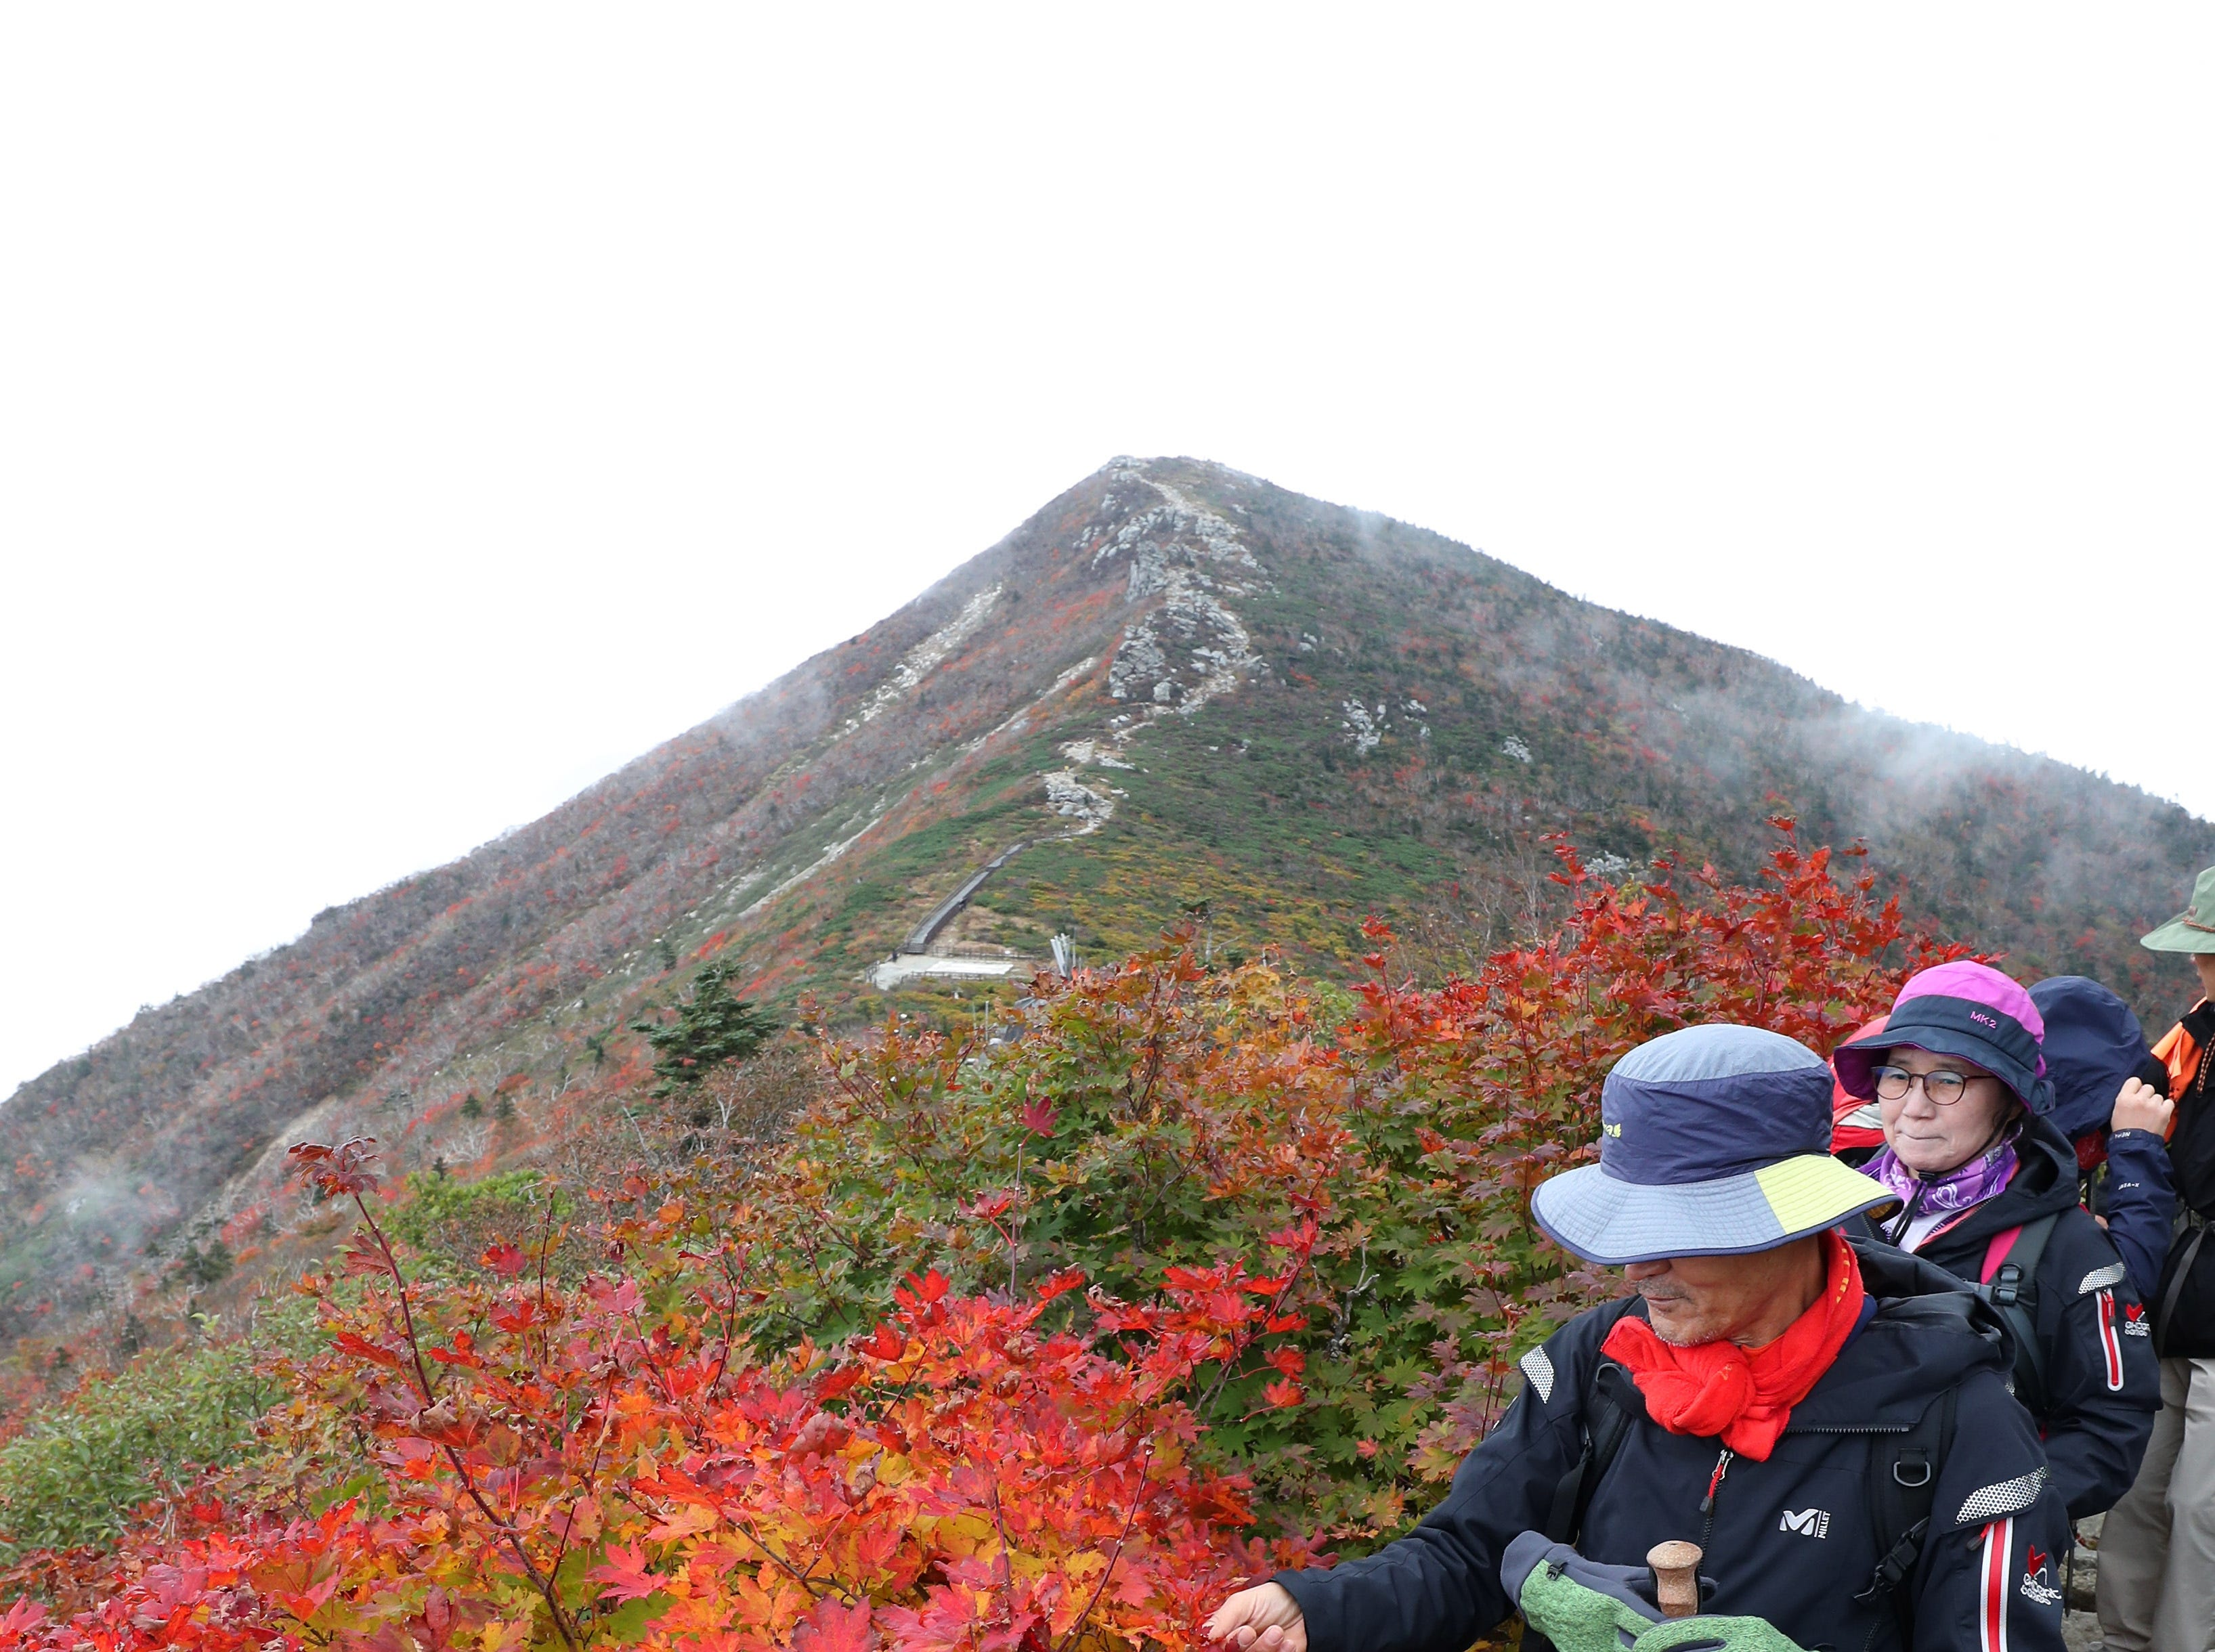 Mountaineers walk along a trail near Jungcheong Shelter on Mount Seorak in Yangyang, Gangwon, South Korea on Sept. 28, 2018, as trees on the mountain turn autumn colors of red and yellow. A definition by the Korea Meteorological Administration says that the start of the changing of the leaves is pronounced when 20 percent of the mountain's trees from its peak are tinged.